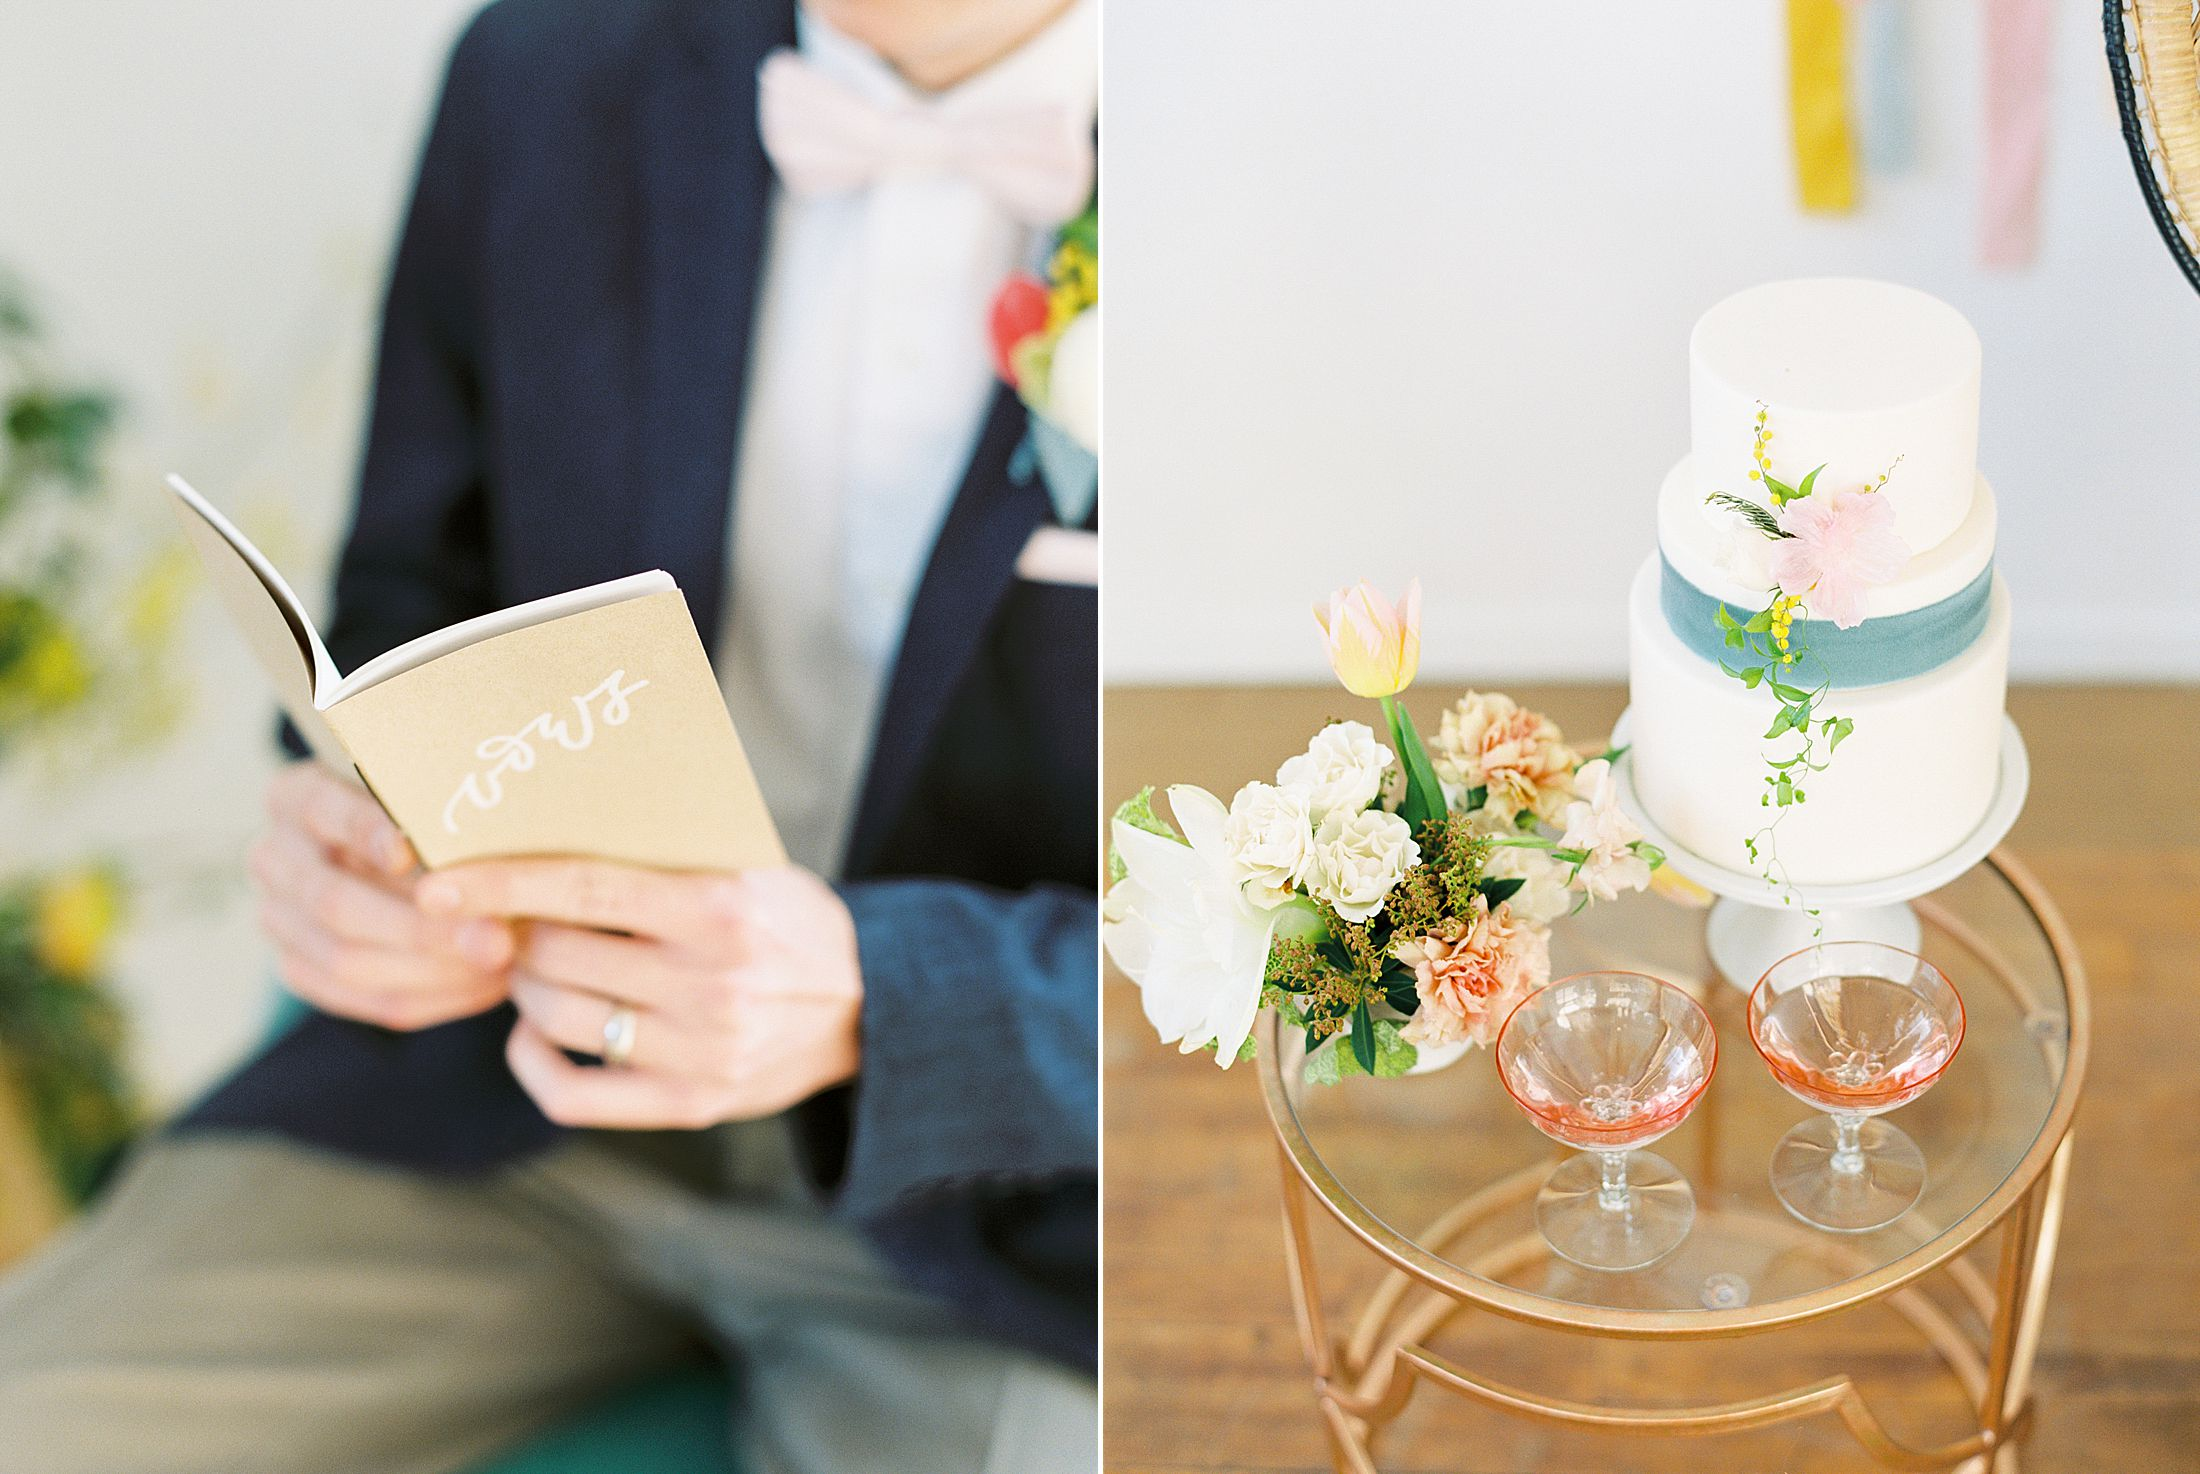 Bay Area Spring Wedding Inspiration - Ashley Baumgartner - Inspired By This - Party Crush Studio and Lens of Lenox Videography - Bay Area Wedding Photography_0012.jpg